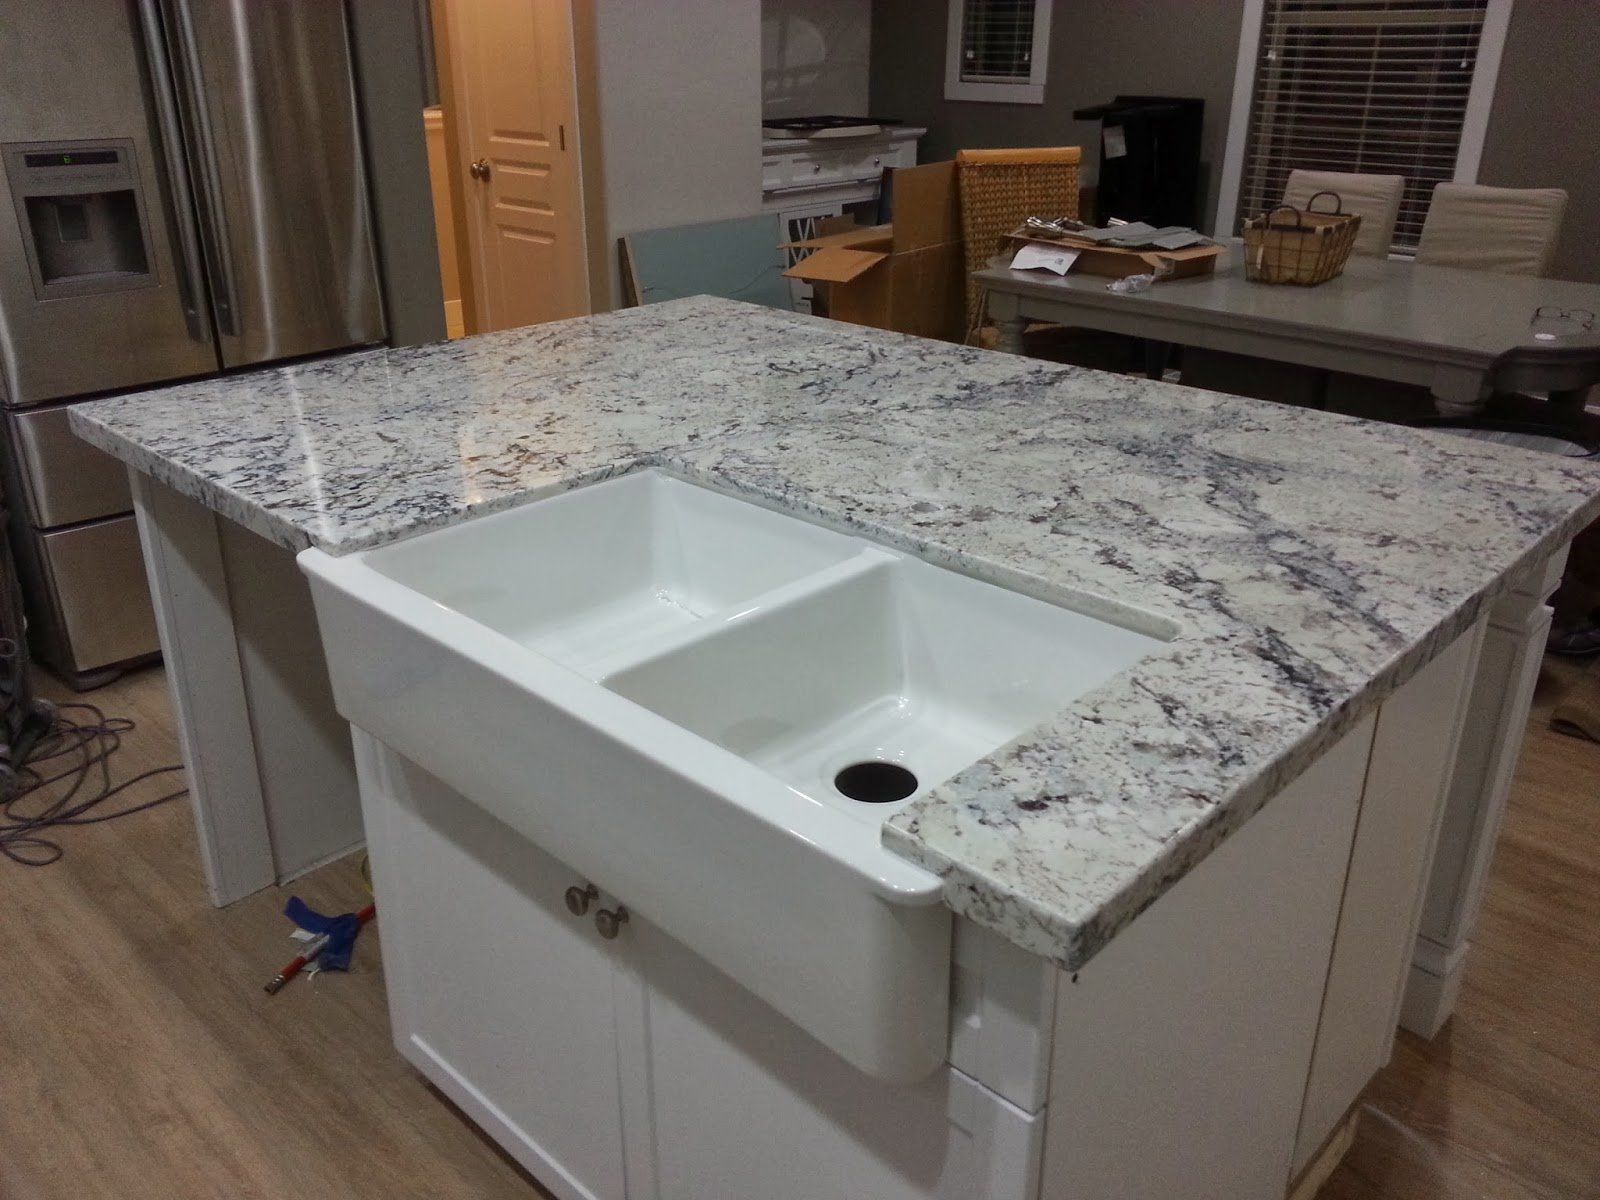 Laminate Countertop Sink Options : ... countertops farm sink double sinks laminate flooring kitchen islands